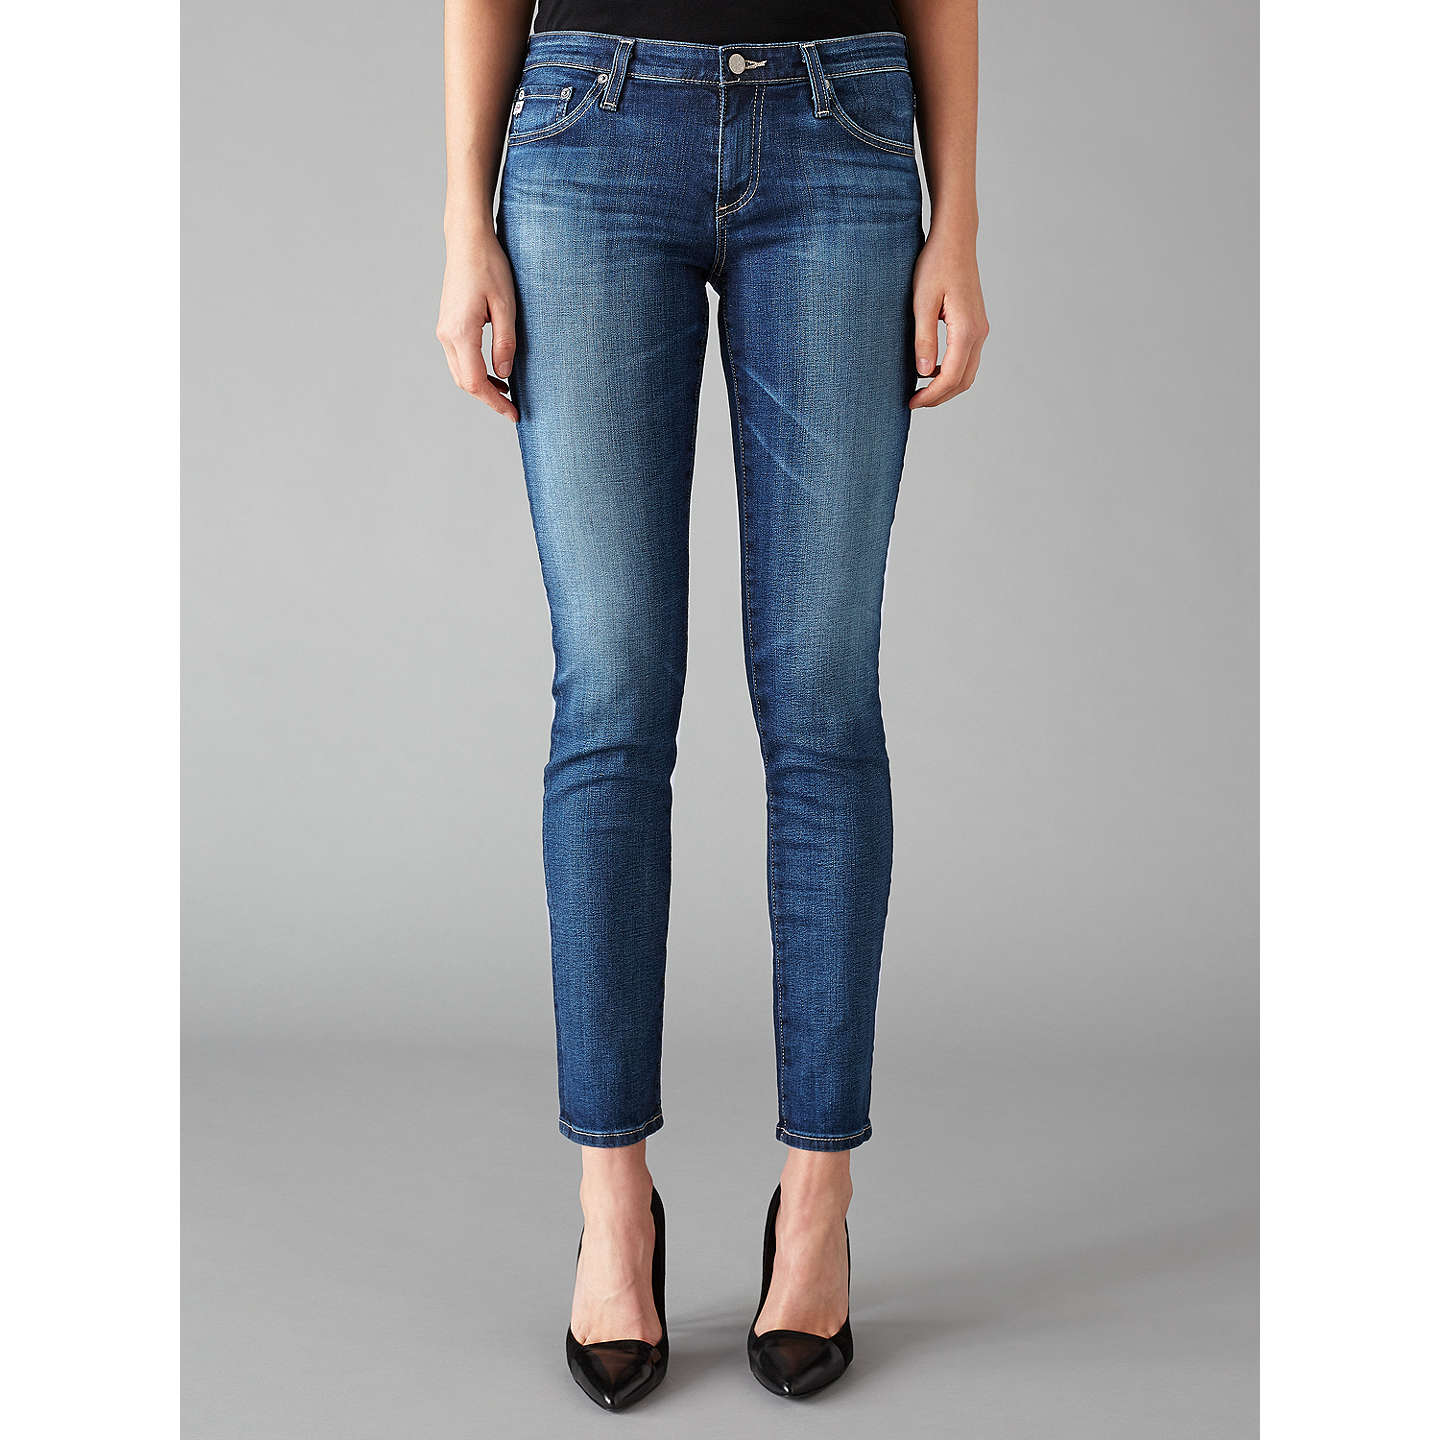 BuyAG The Stilt Mid Rise Skinny Jeans, 11 Years Journey, 24 Online at  johnlewis ...